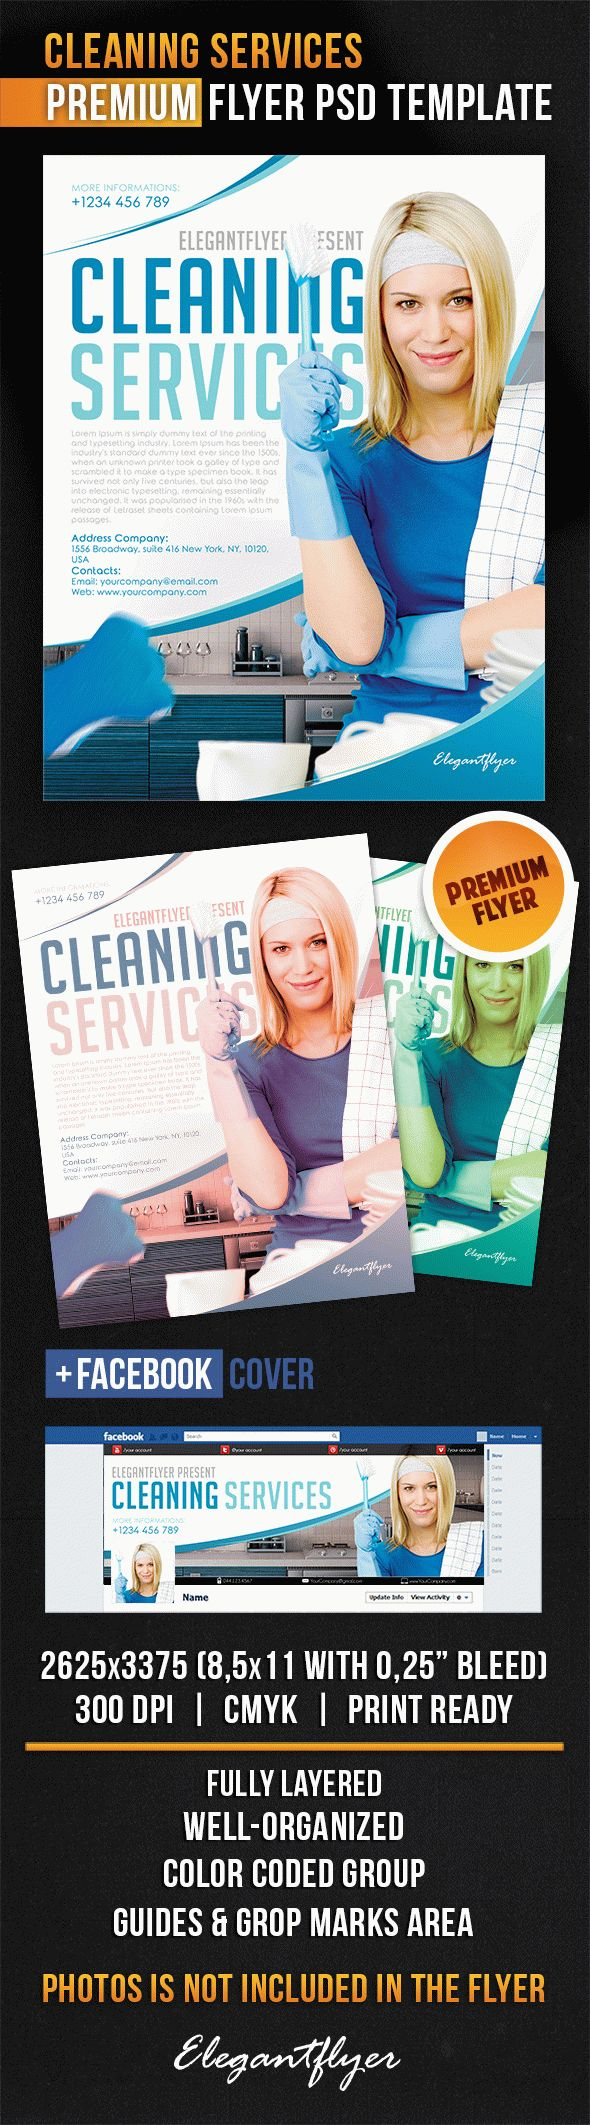 cleaning services flyer psd template by elegantflyer. Black Bedroom Furniture Sets. Home Design Ideas